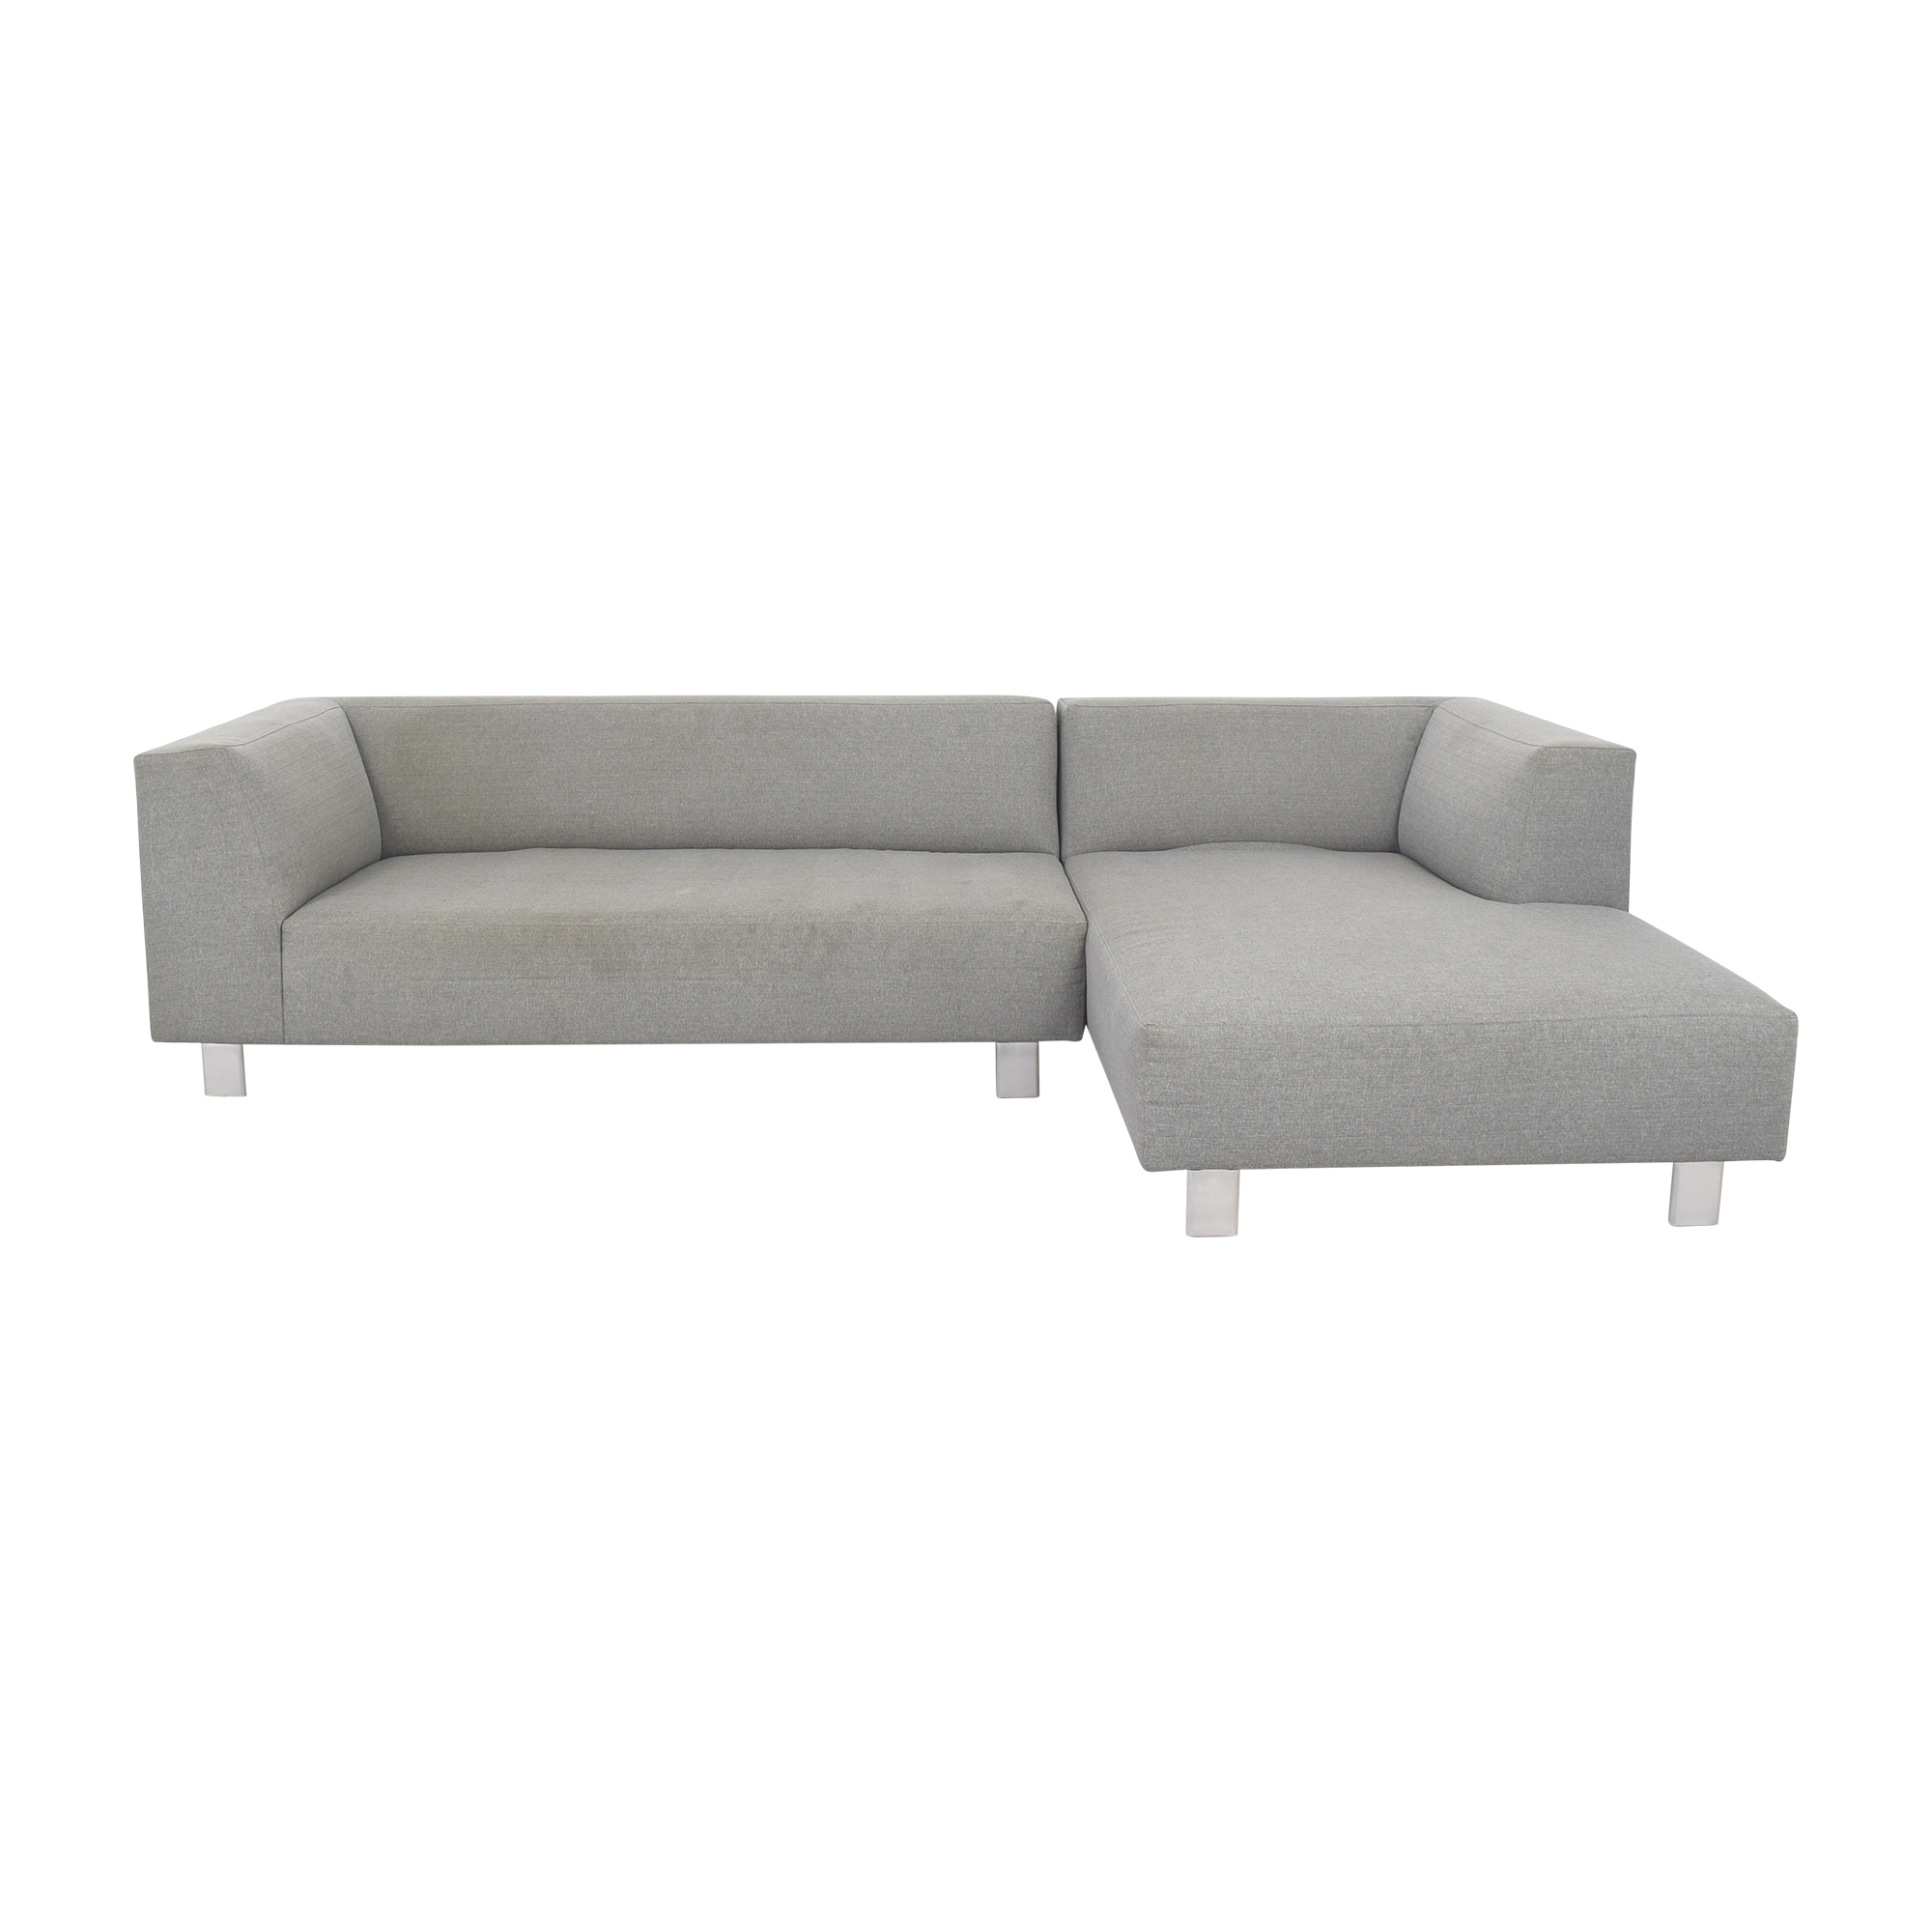 buy Room & Board Grey Chaise Sectional Sofa Room & Board Sectionals